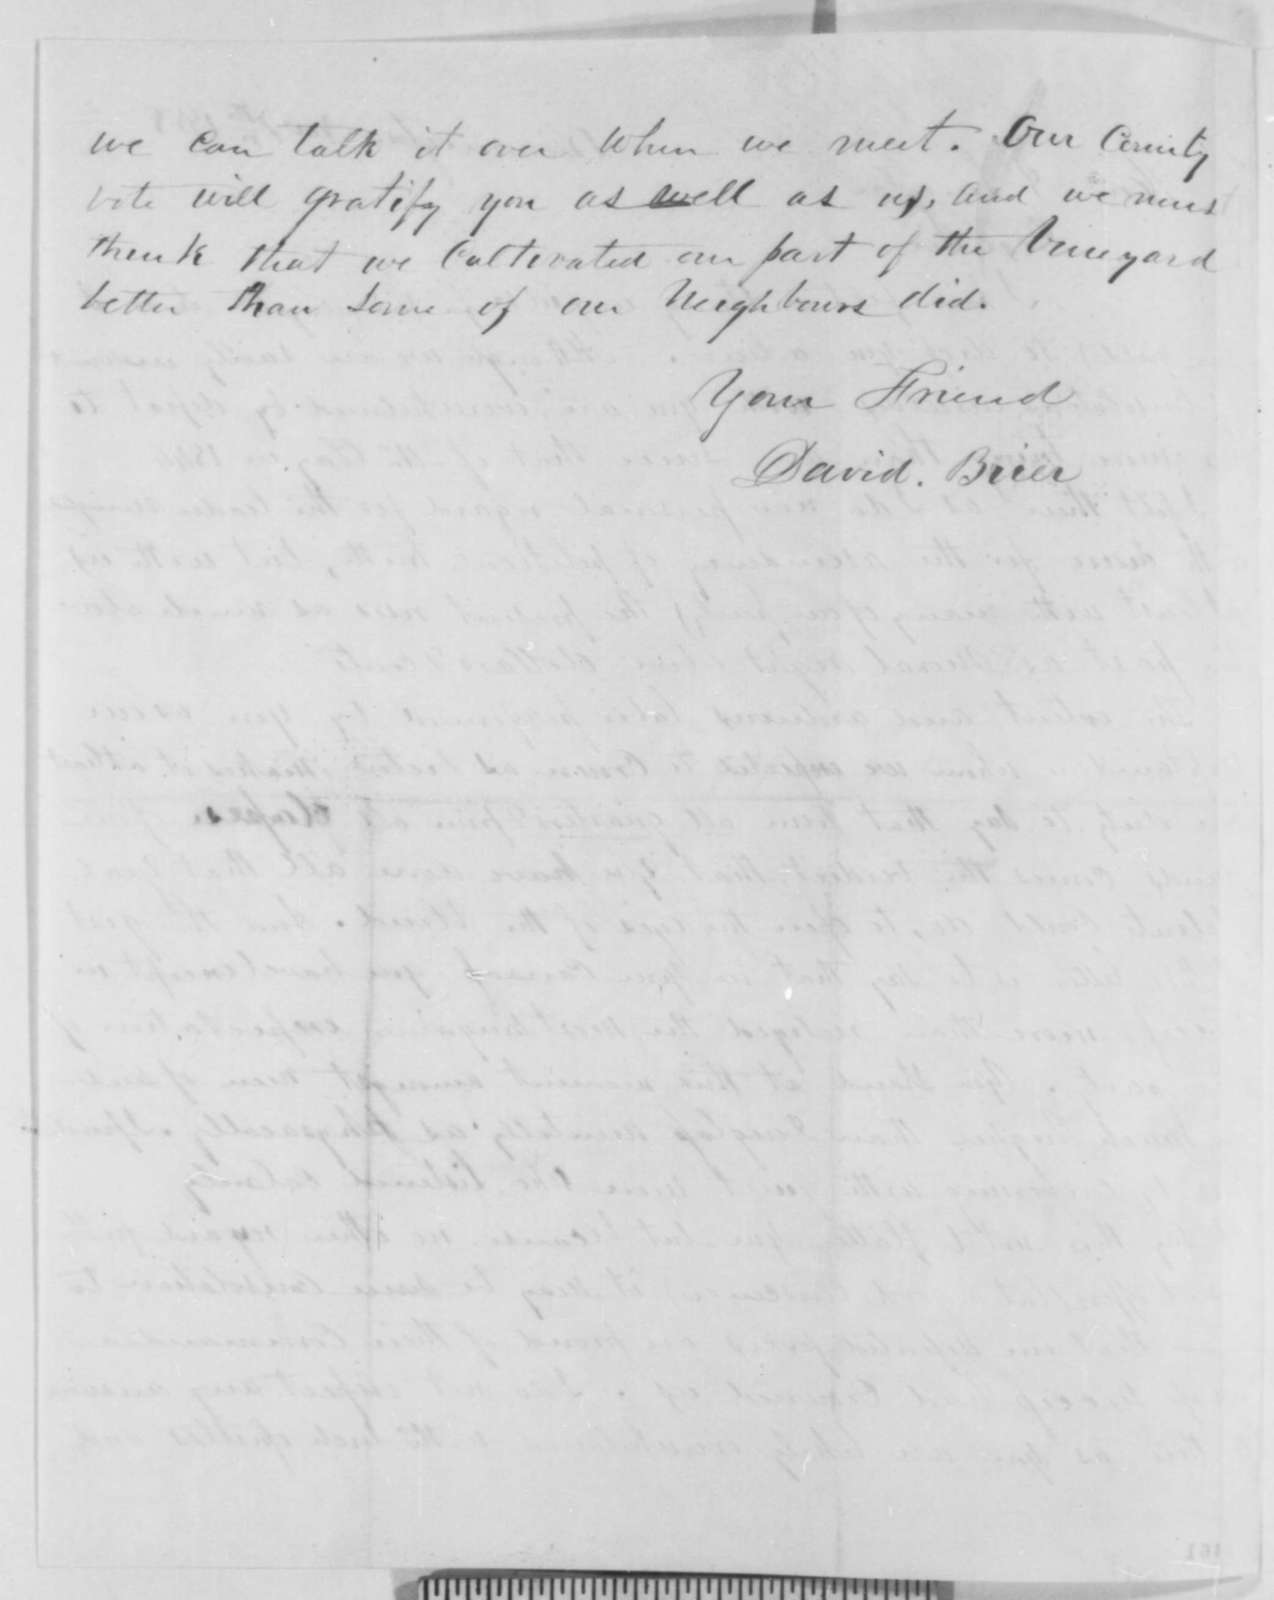 David Brier to Abraham Lincoln, Sunday, November 07, 1858  (Senate)